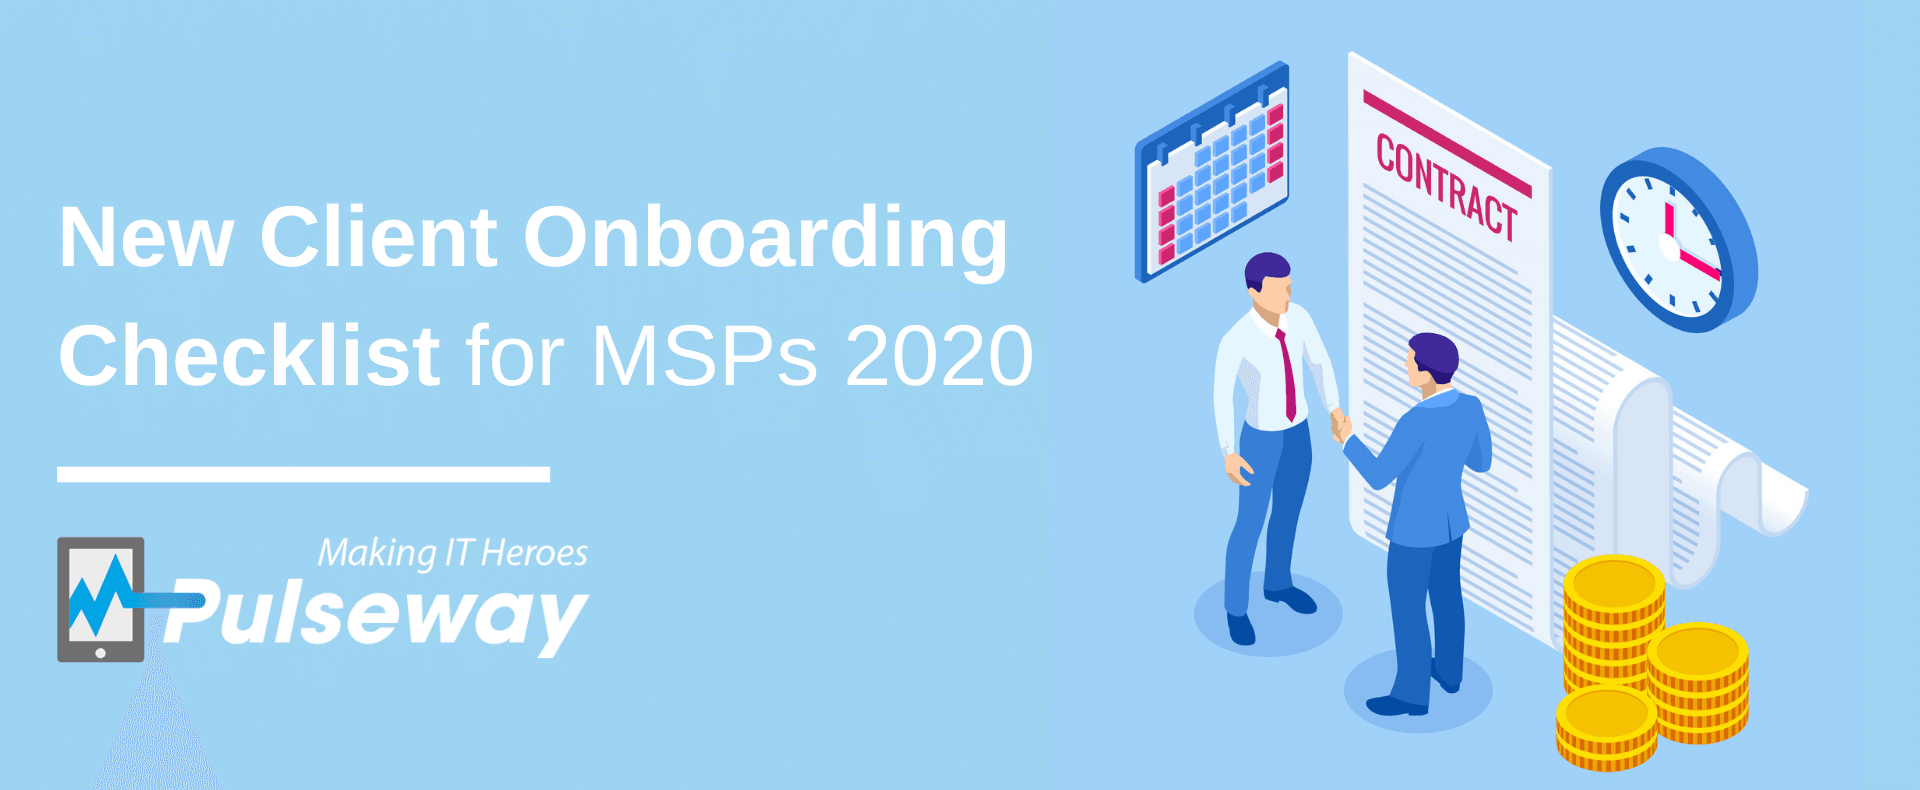 New Client Onboarding for MSPs